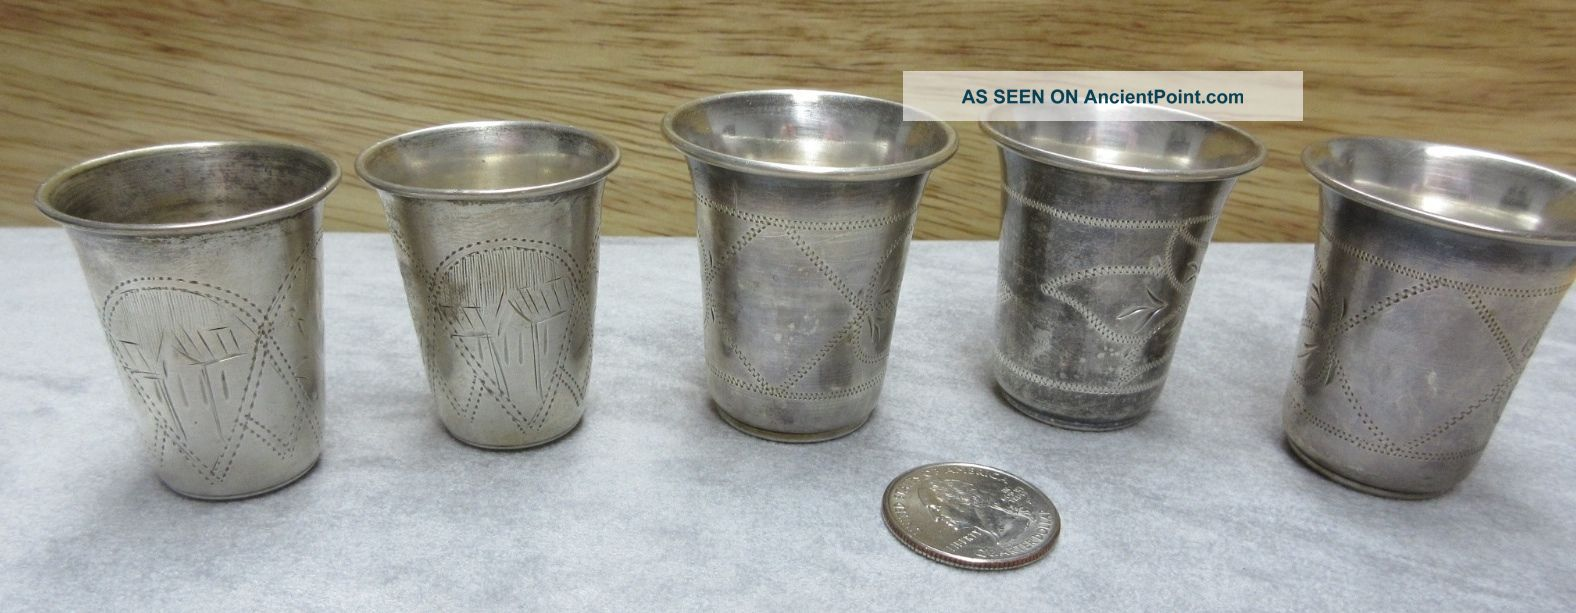 1899 Antique Set Of 5 Imperial Russian 84 Silver Vodka Cups Goblet Cordial Kiev Russia photo